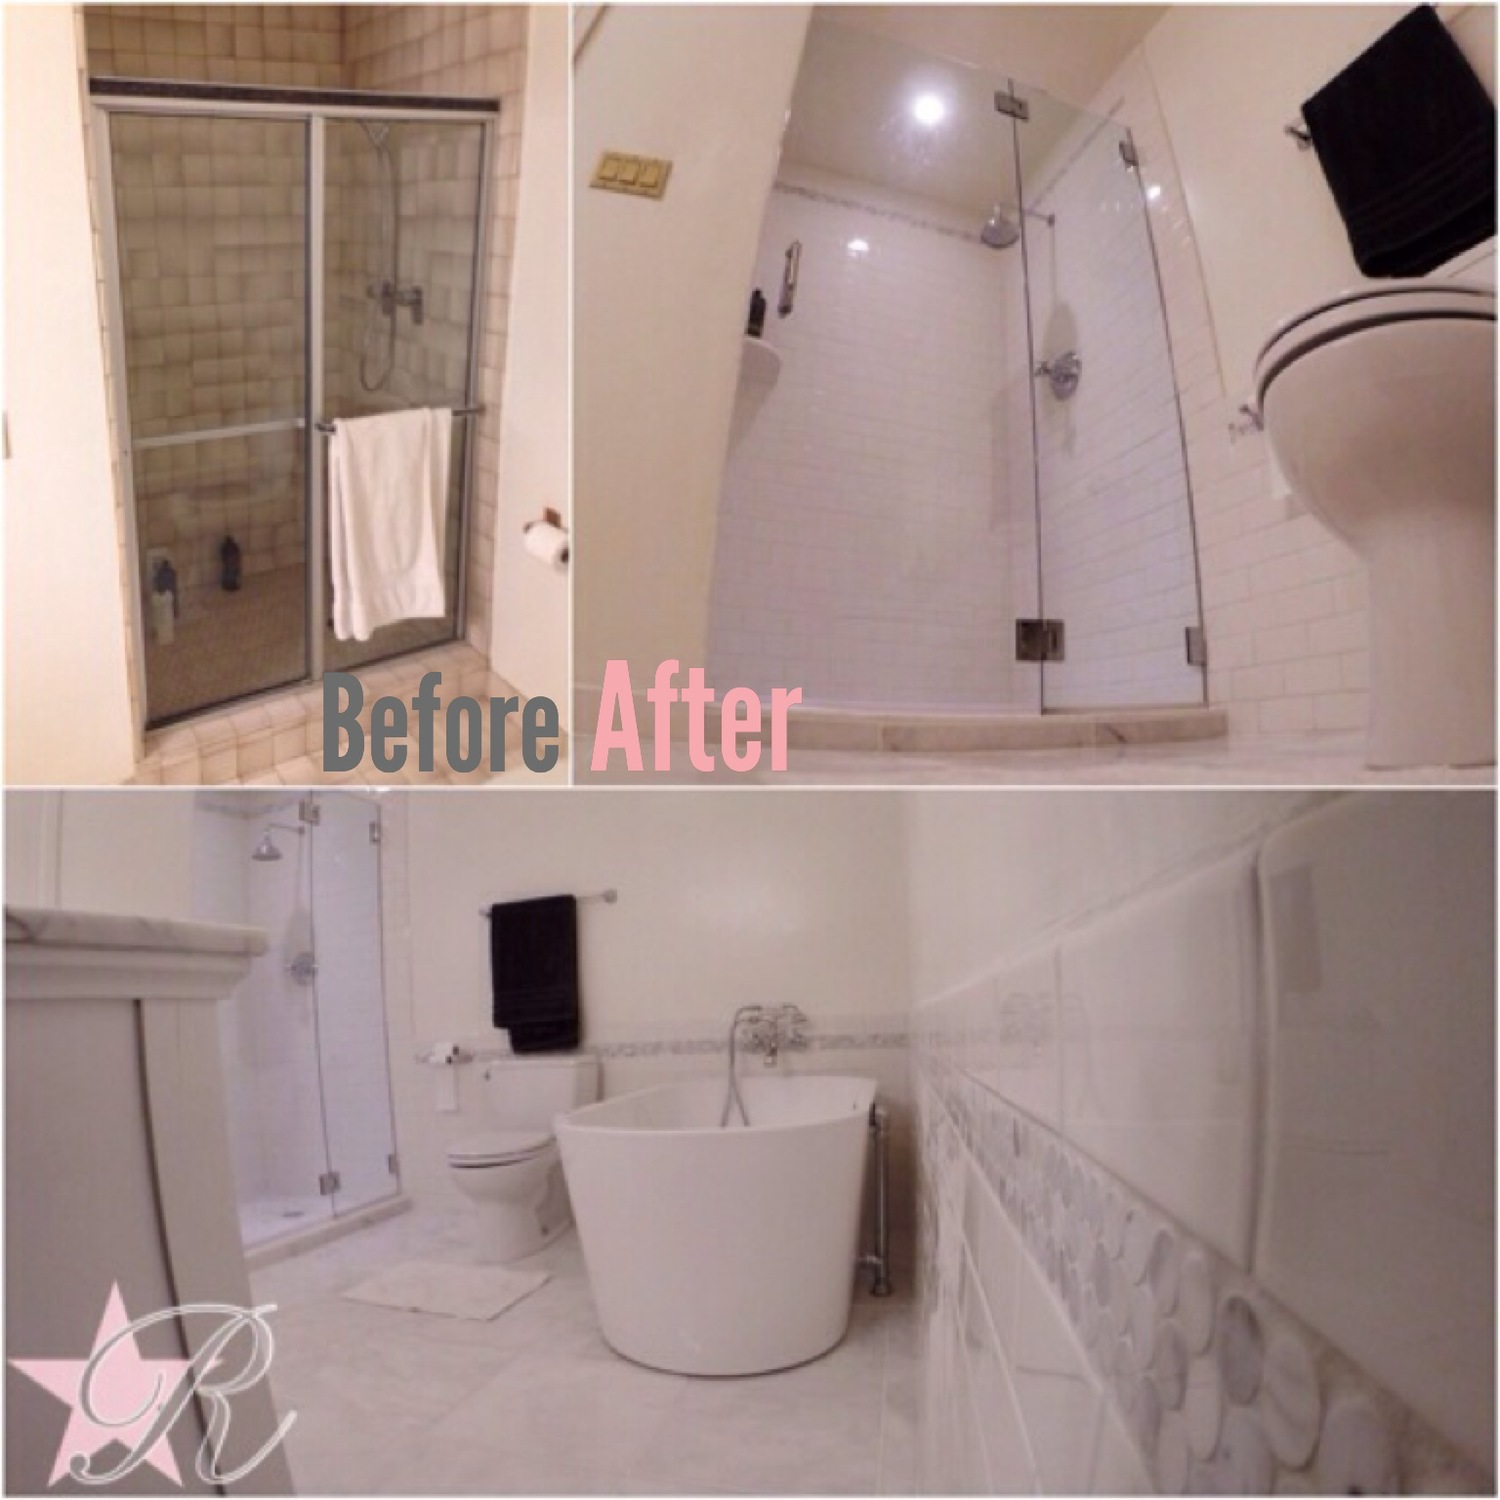 Bathroom Renovation Rockstar Remodel - Bathroom renovation videos